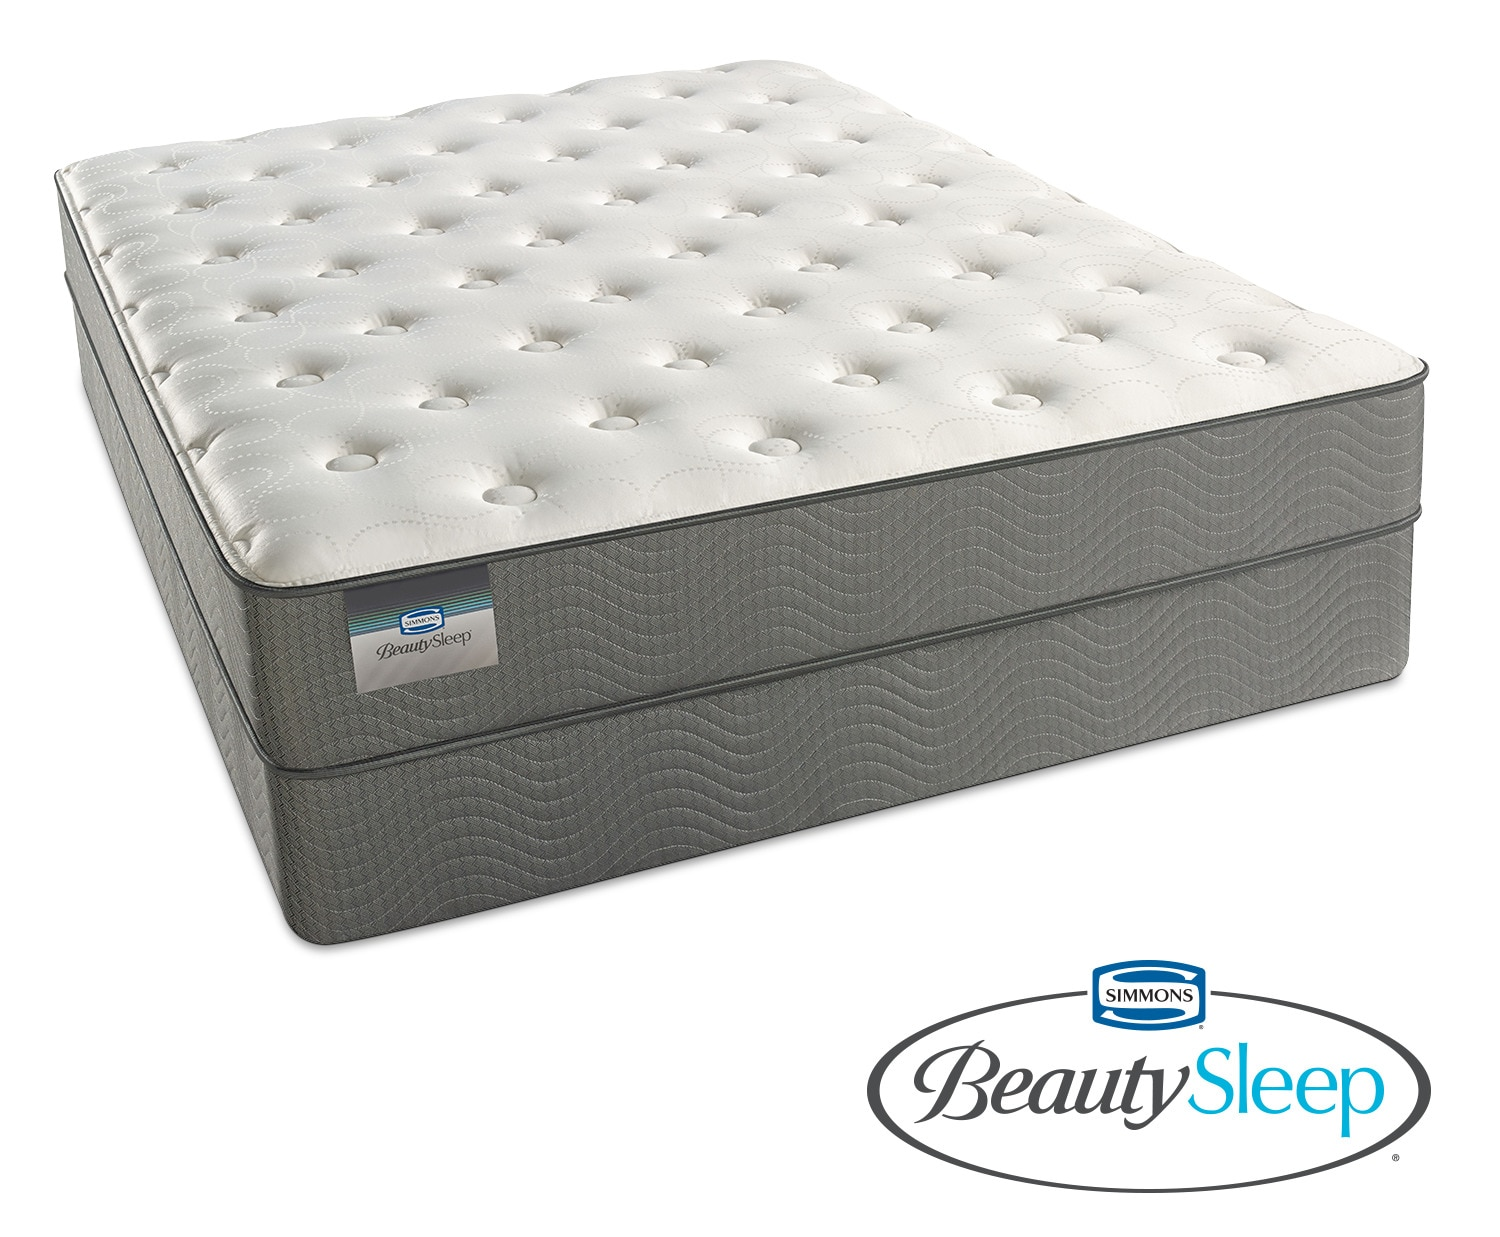 sapphire blue luxury firm queen mattress and foundation set